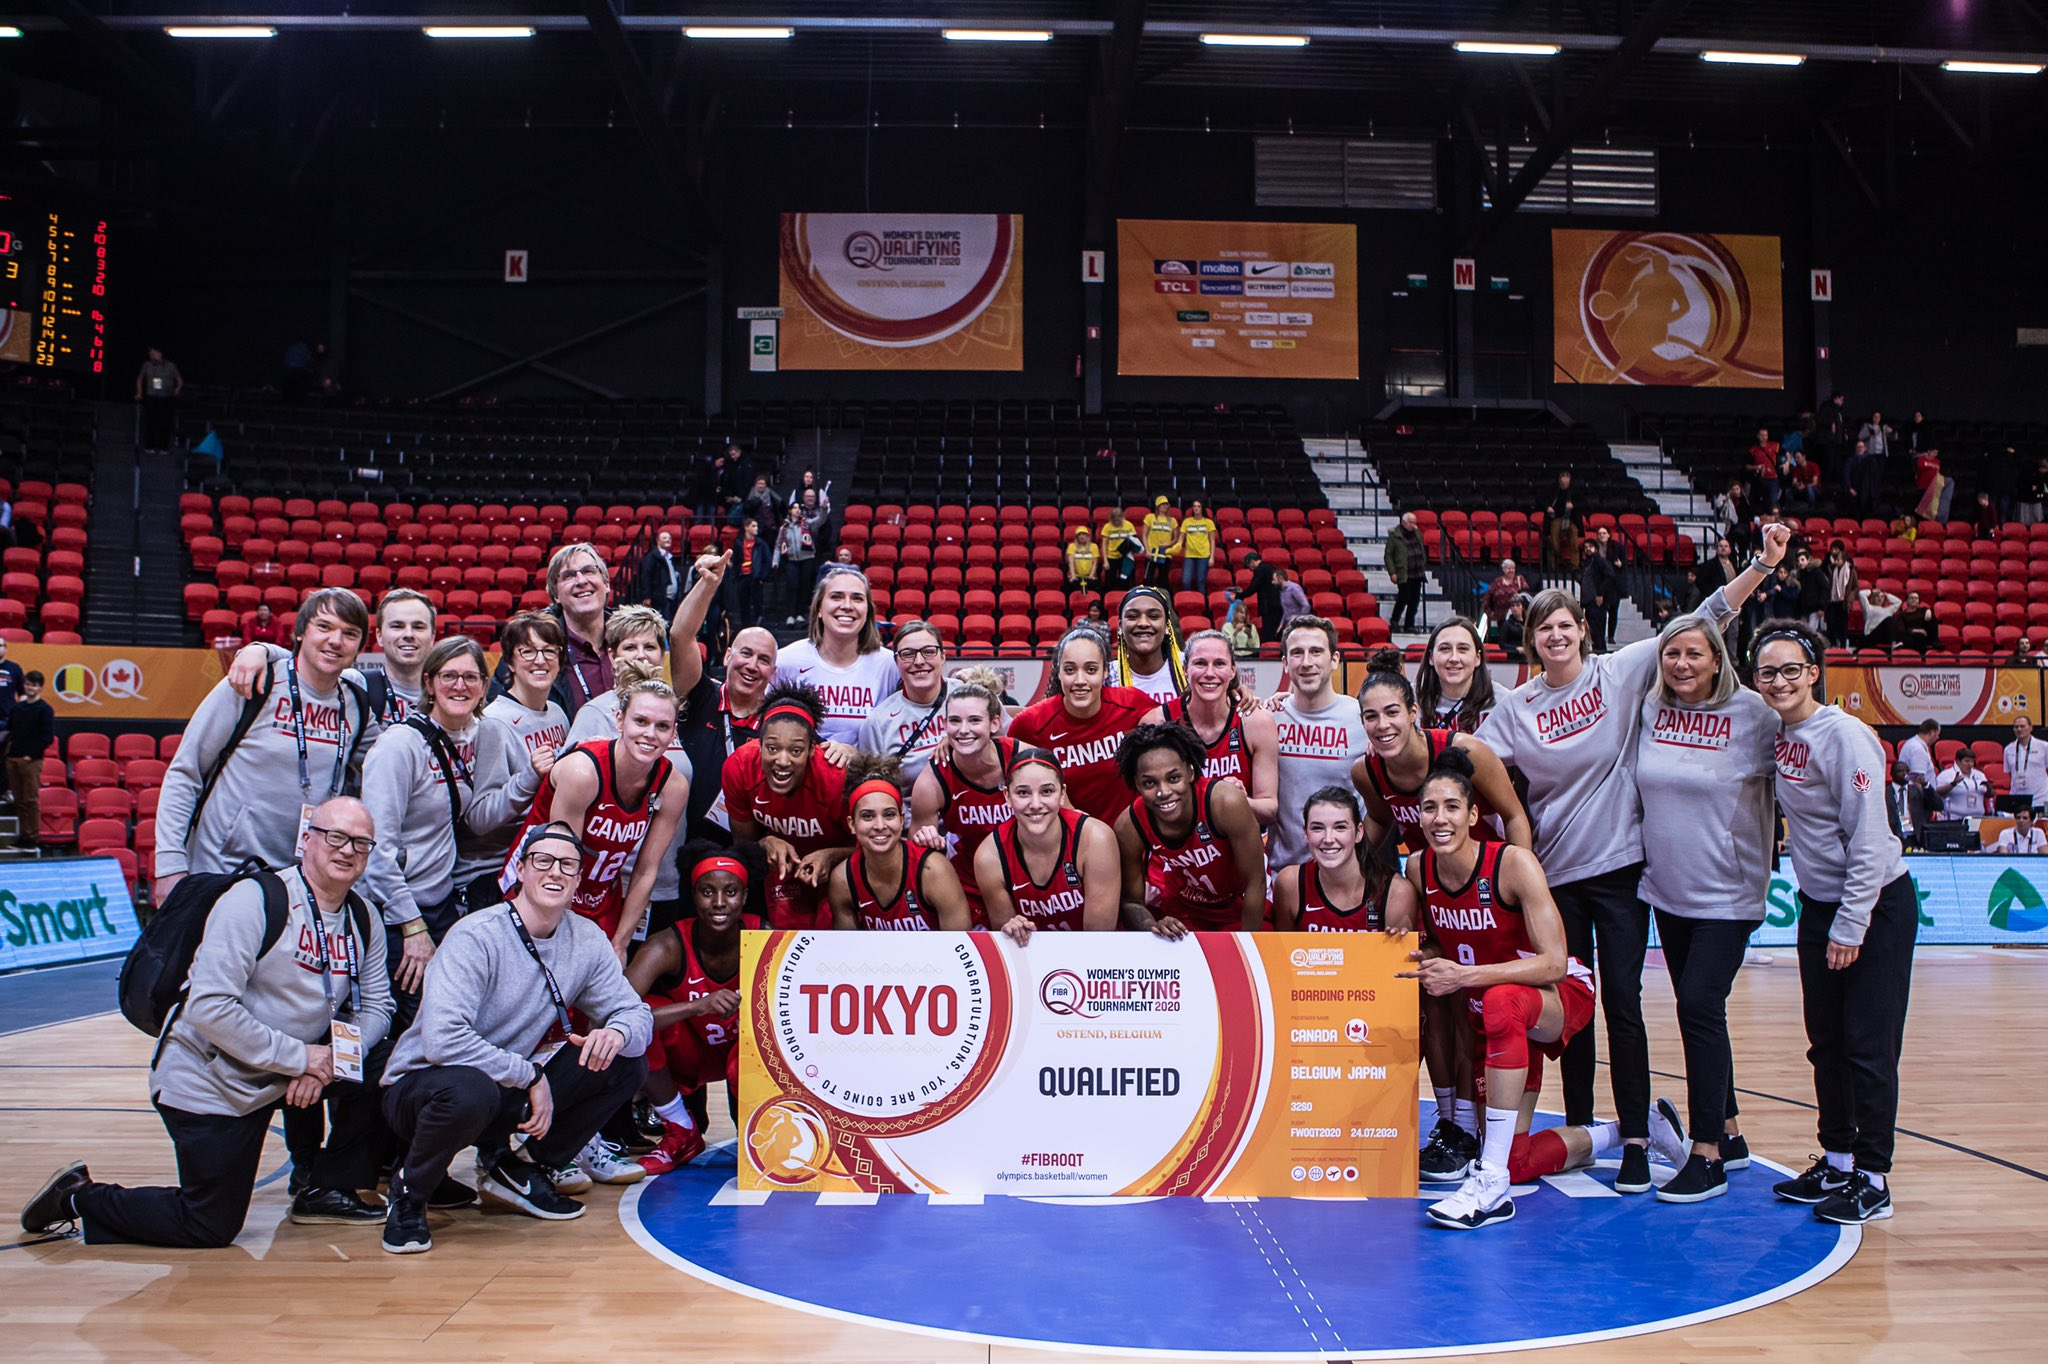 Canada qualifies for Tokyo 2020 Olympics with victory over Sweden